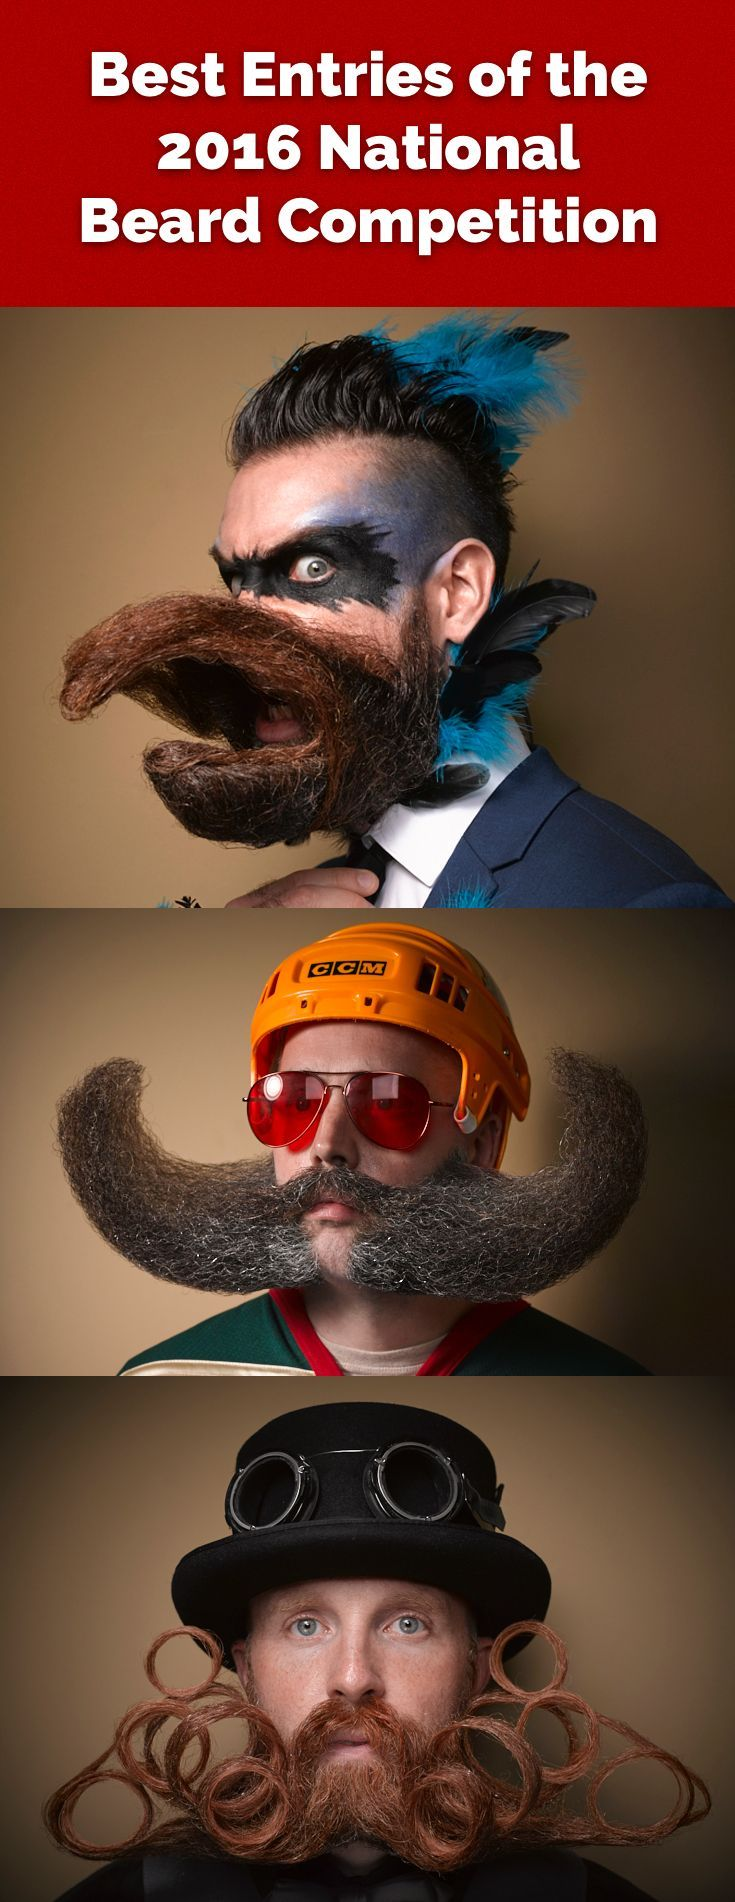 Best Entries of the 2016 National Beard Competition. The second entry is stunning.